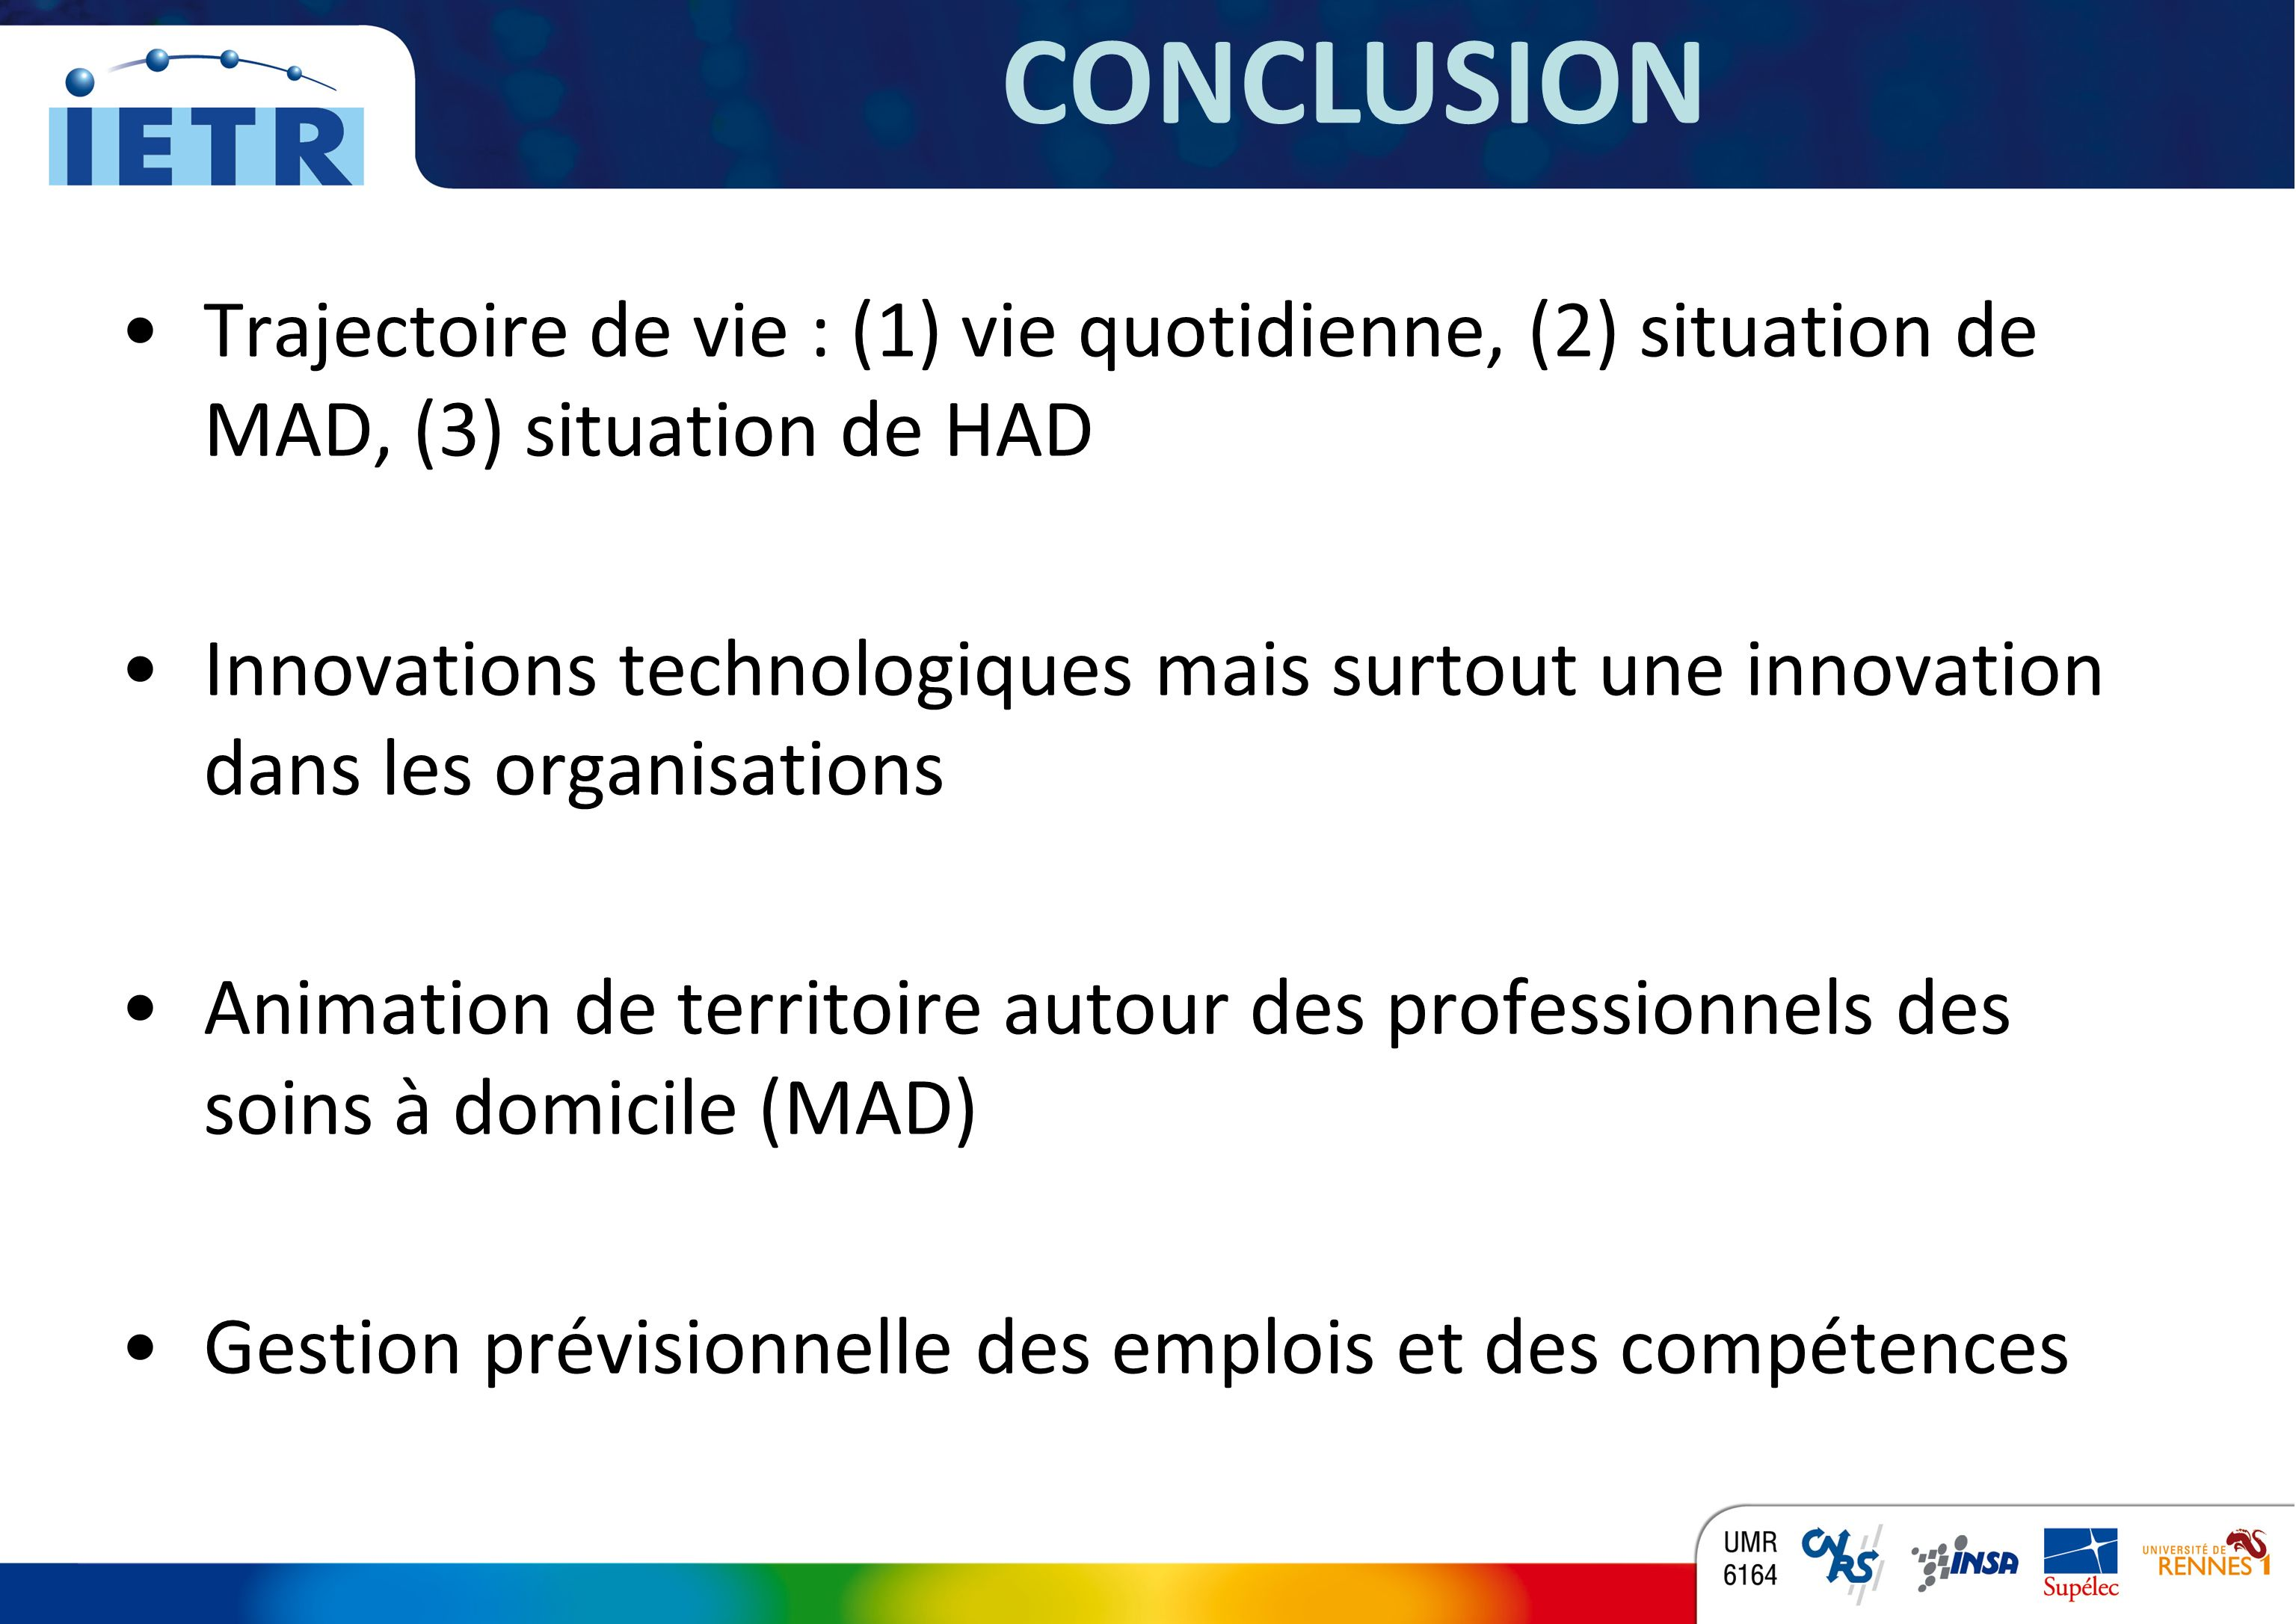 CONCLUSION Trajectoire de vie : (1) vie quotidienne, (2) situation de MAD, (3) situation de HAD.